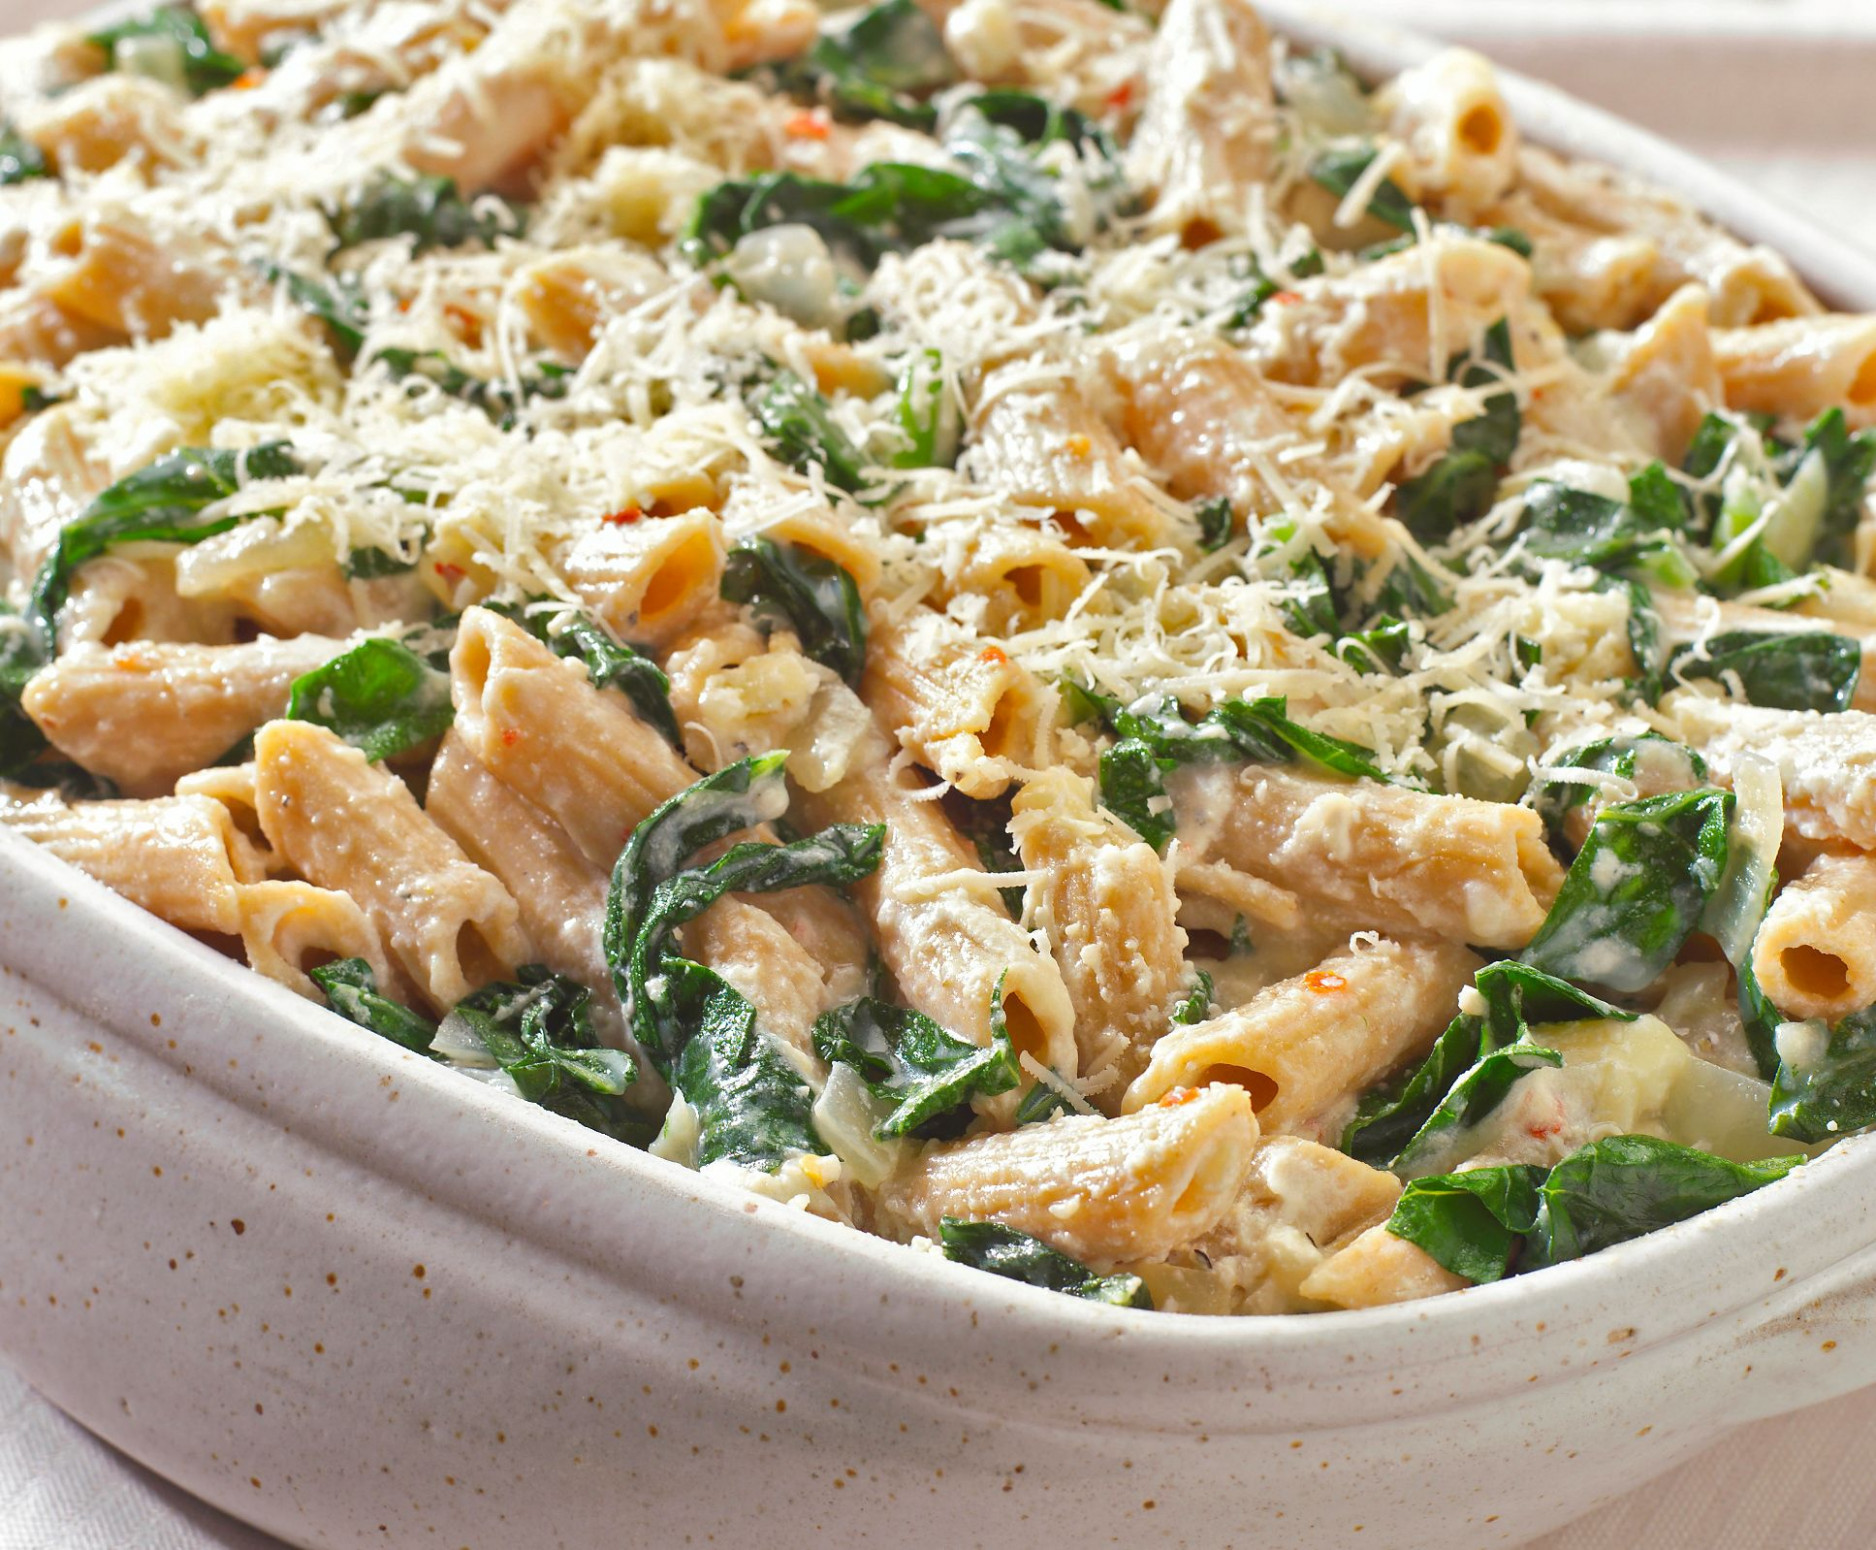 Vegetarian Baked Pasta With Cheese and Spinach Recipe - vegetarian recipes in oven